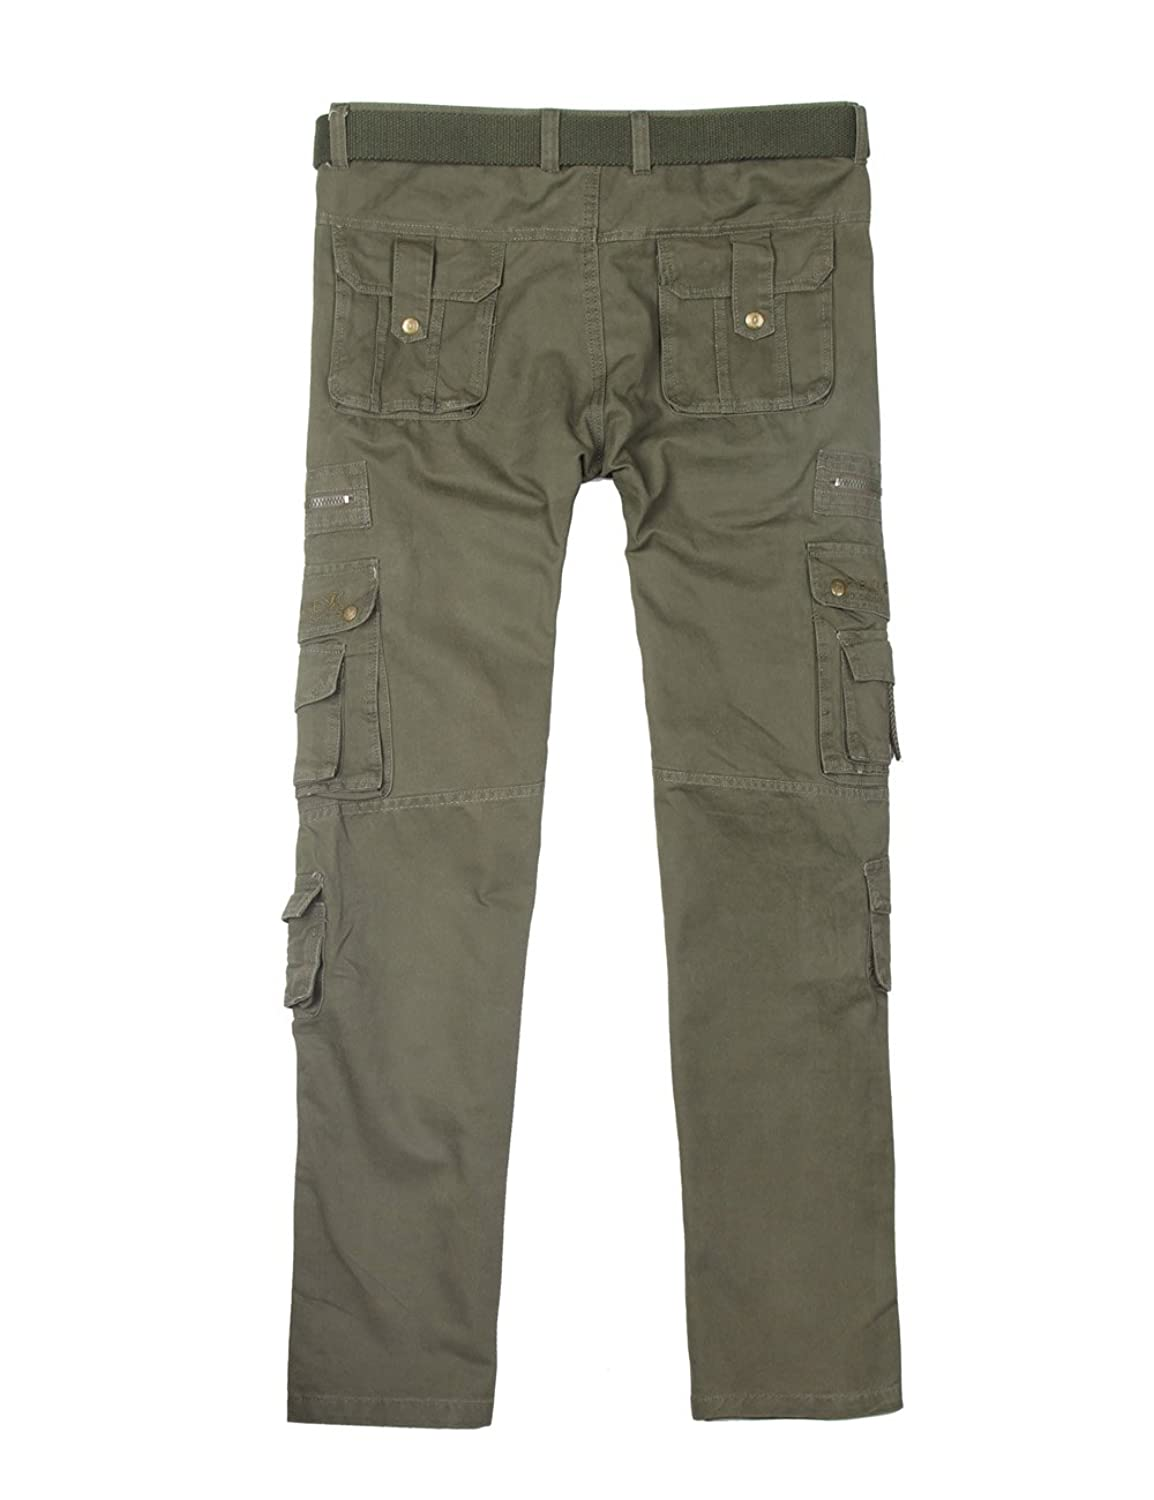 Menschwear Mens Multi Pockets Cargo Trousers Military Style with Belt:  Amazon.co.uk: Clothing